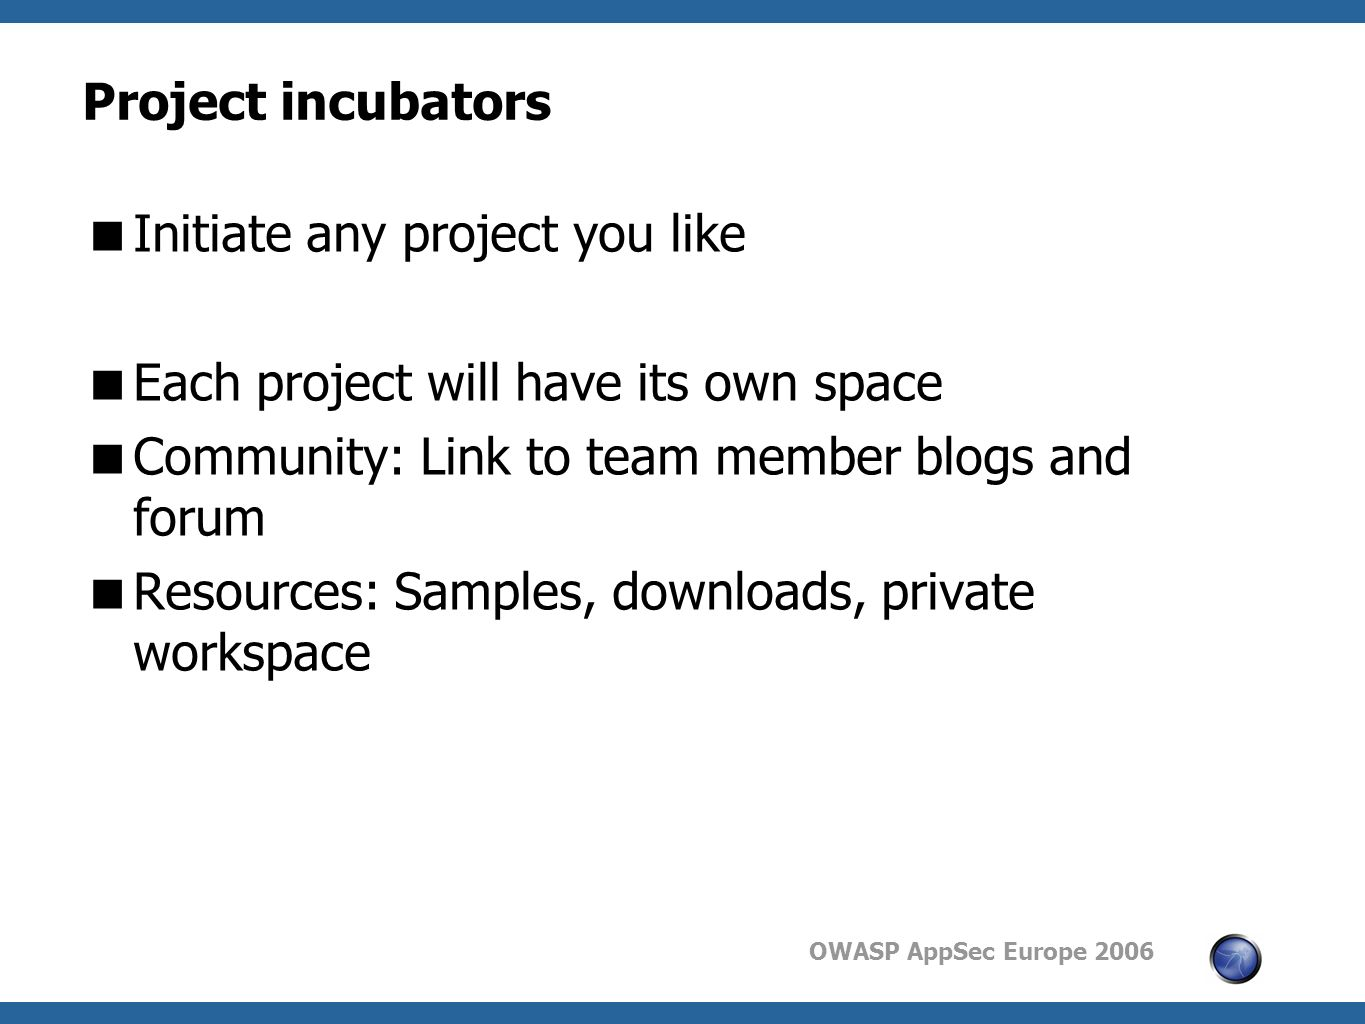 OWASP AppSec Europe 2006 Project incubators  Initiate any project you like  Each project will have its own space  Community: Link to team member blogs and forum  Resources: Samples, downloads, private workspace